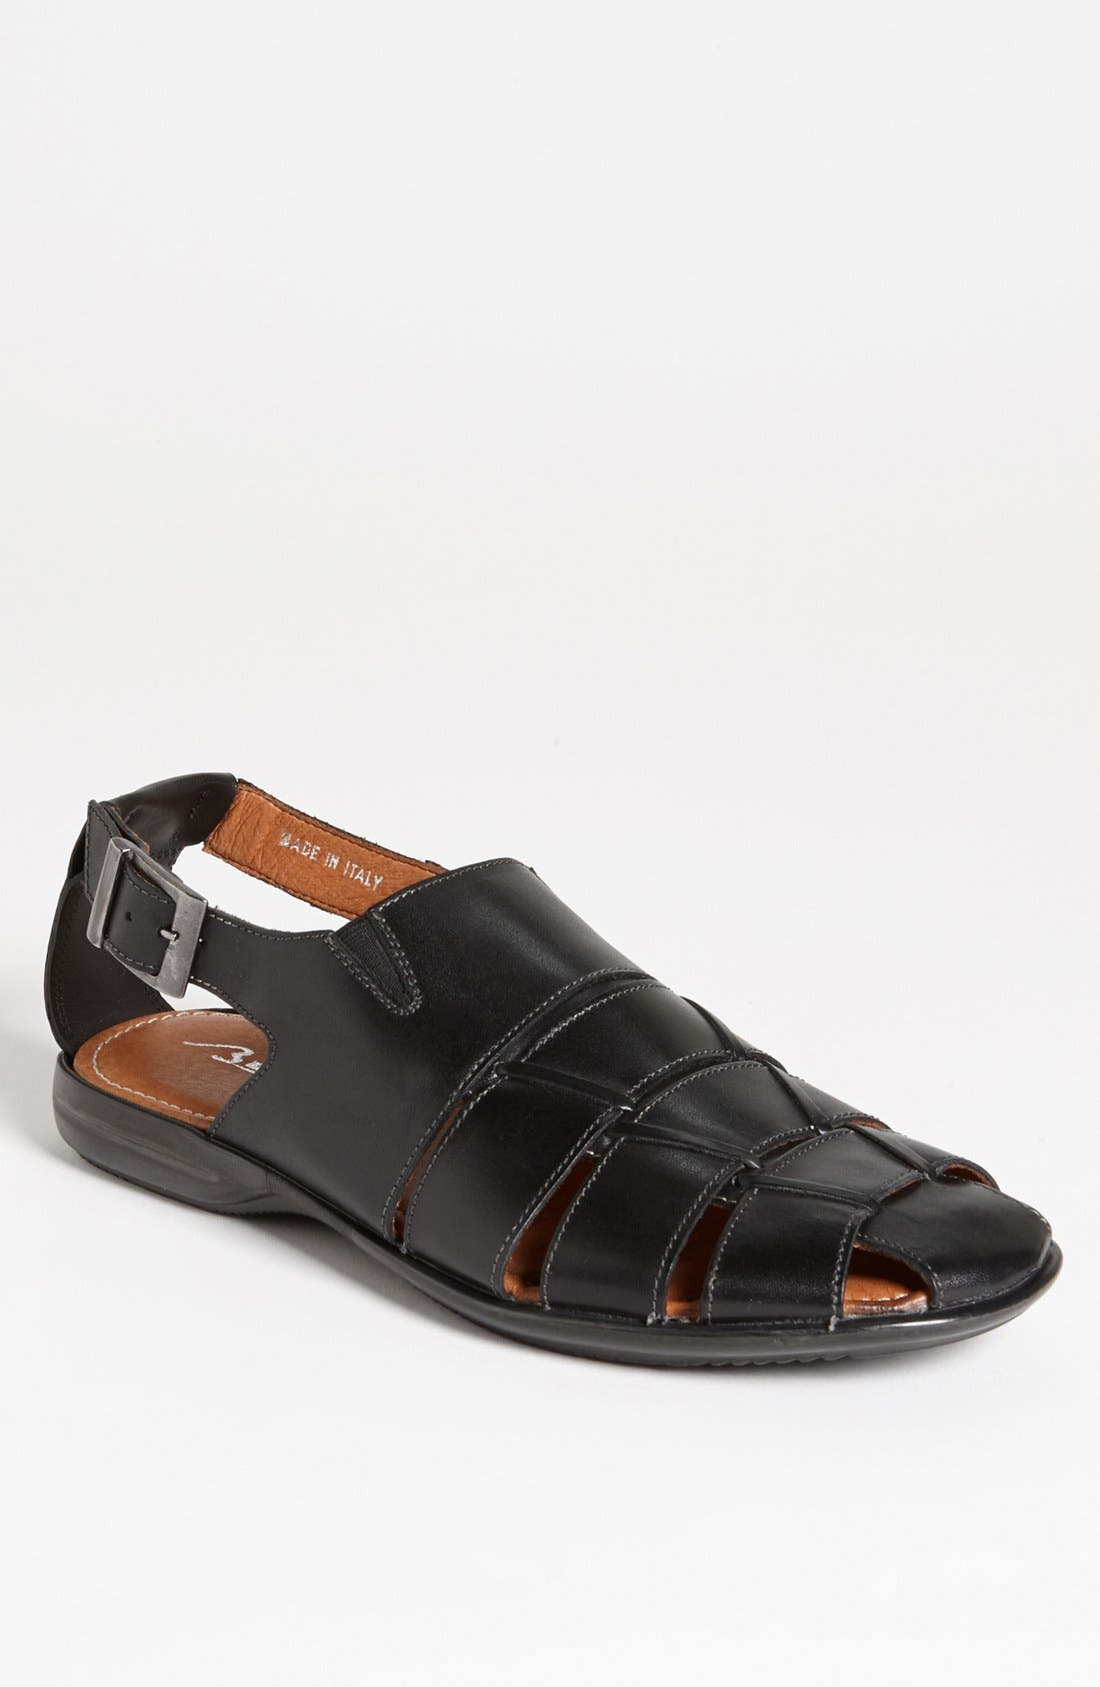 Alternate Image 1 Selected - Bacco Bucci 'Valdano' Sandal (Men)